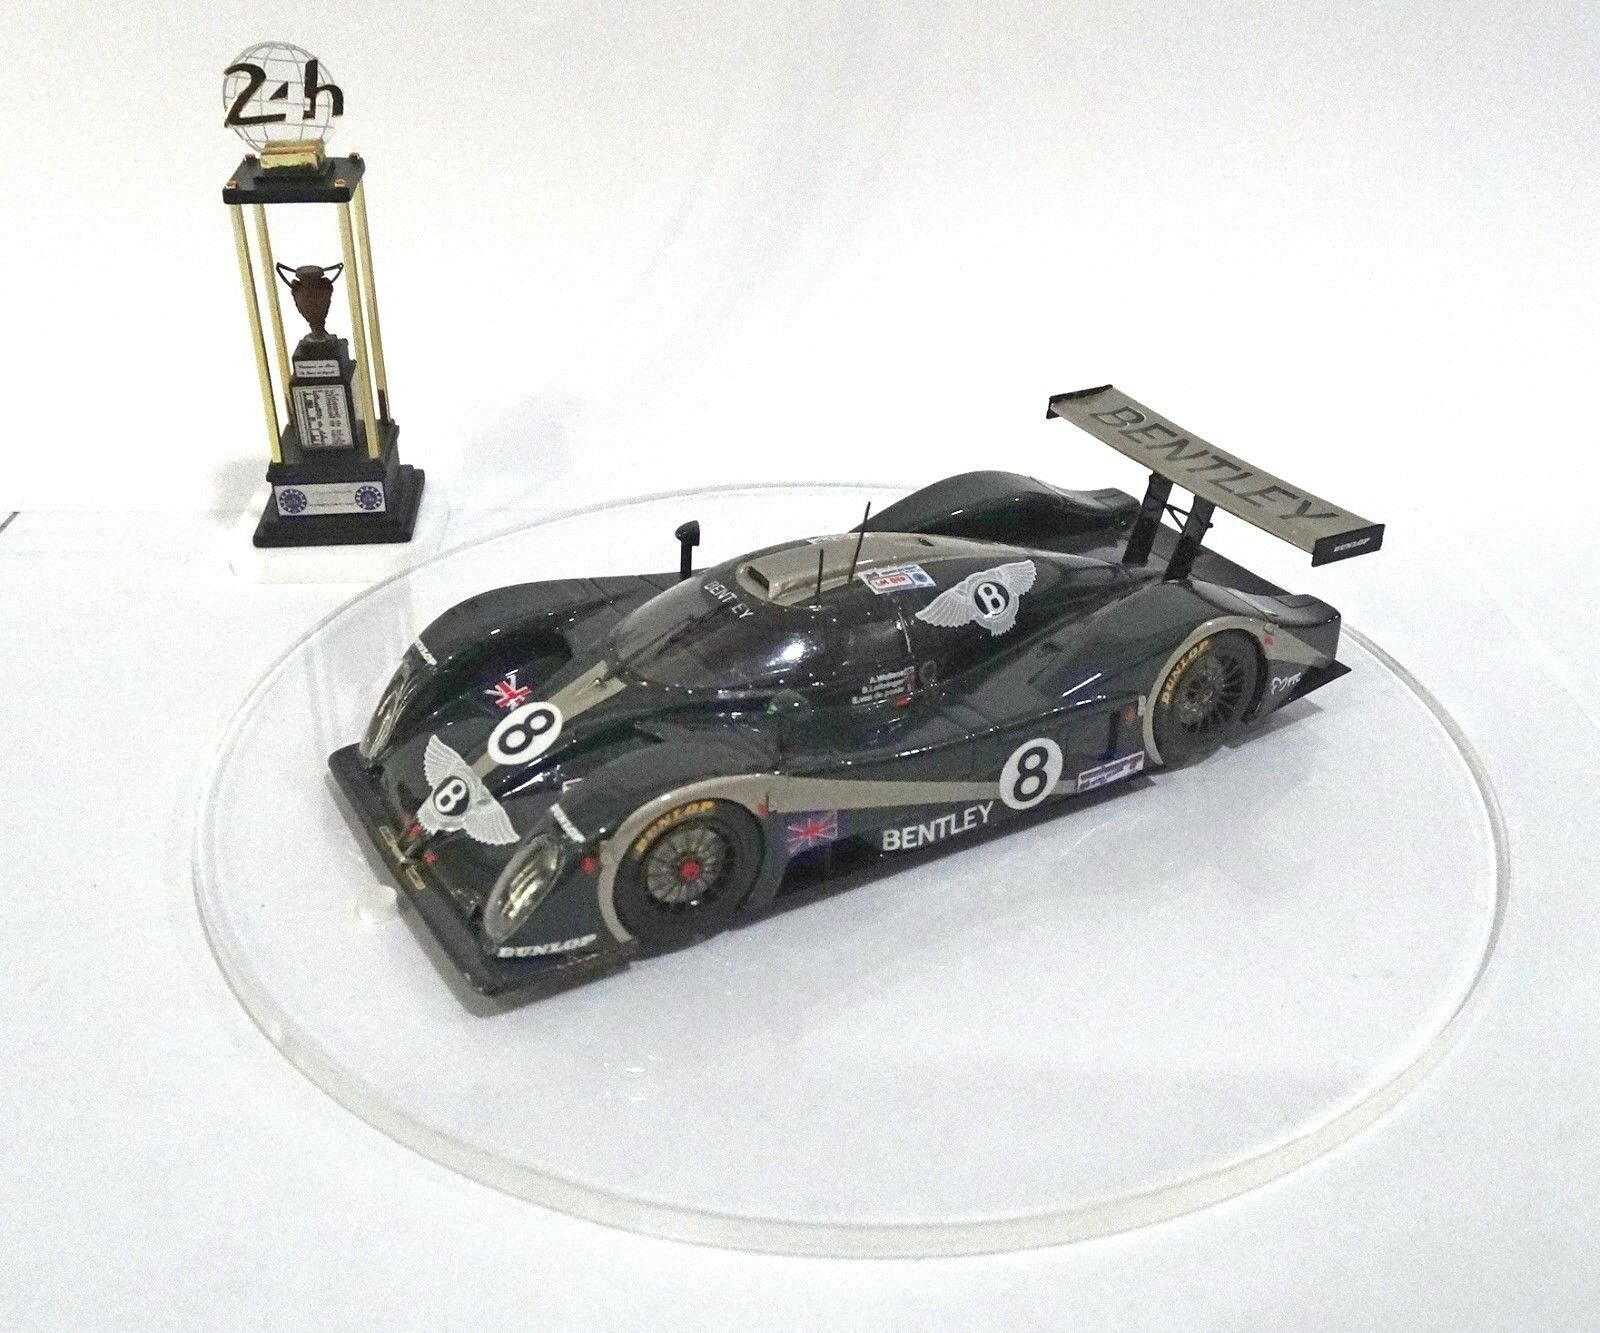 BENTLE EXP SPEED 8 Le Mans 2001 Built Mont Briljan 65533;65533; Kit 1  43 Inga gnista minichamps